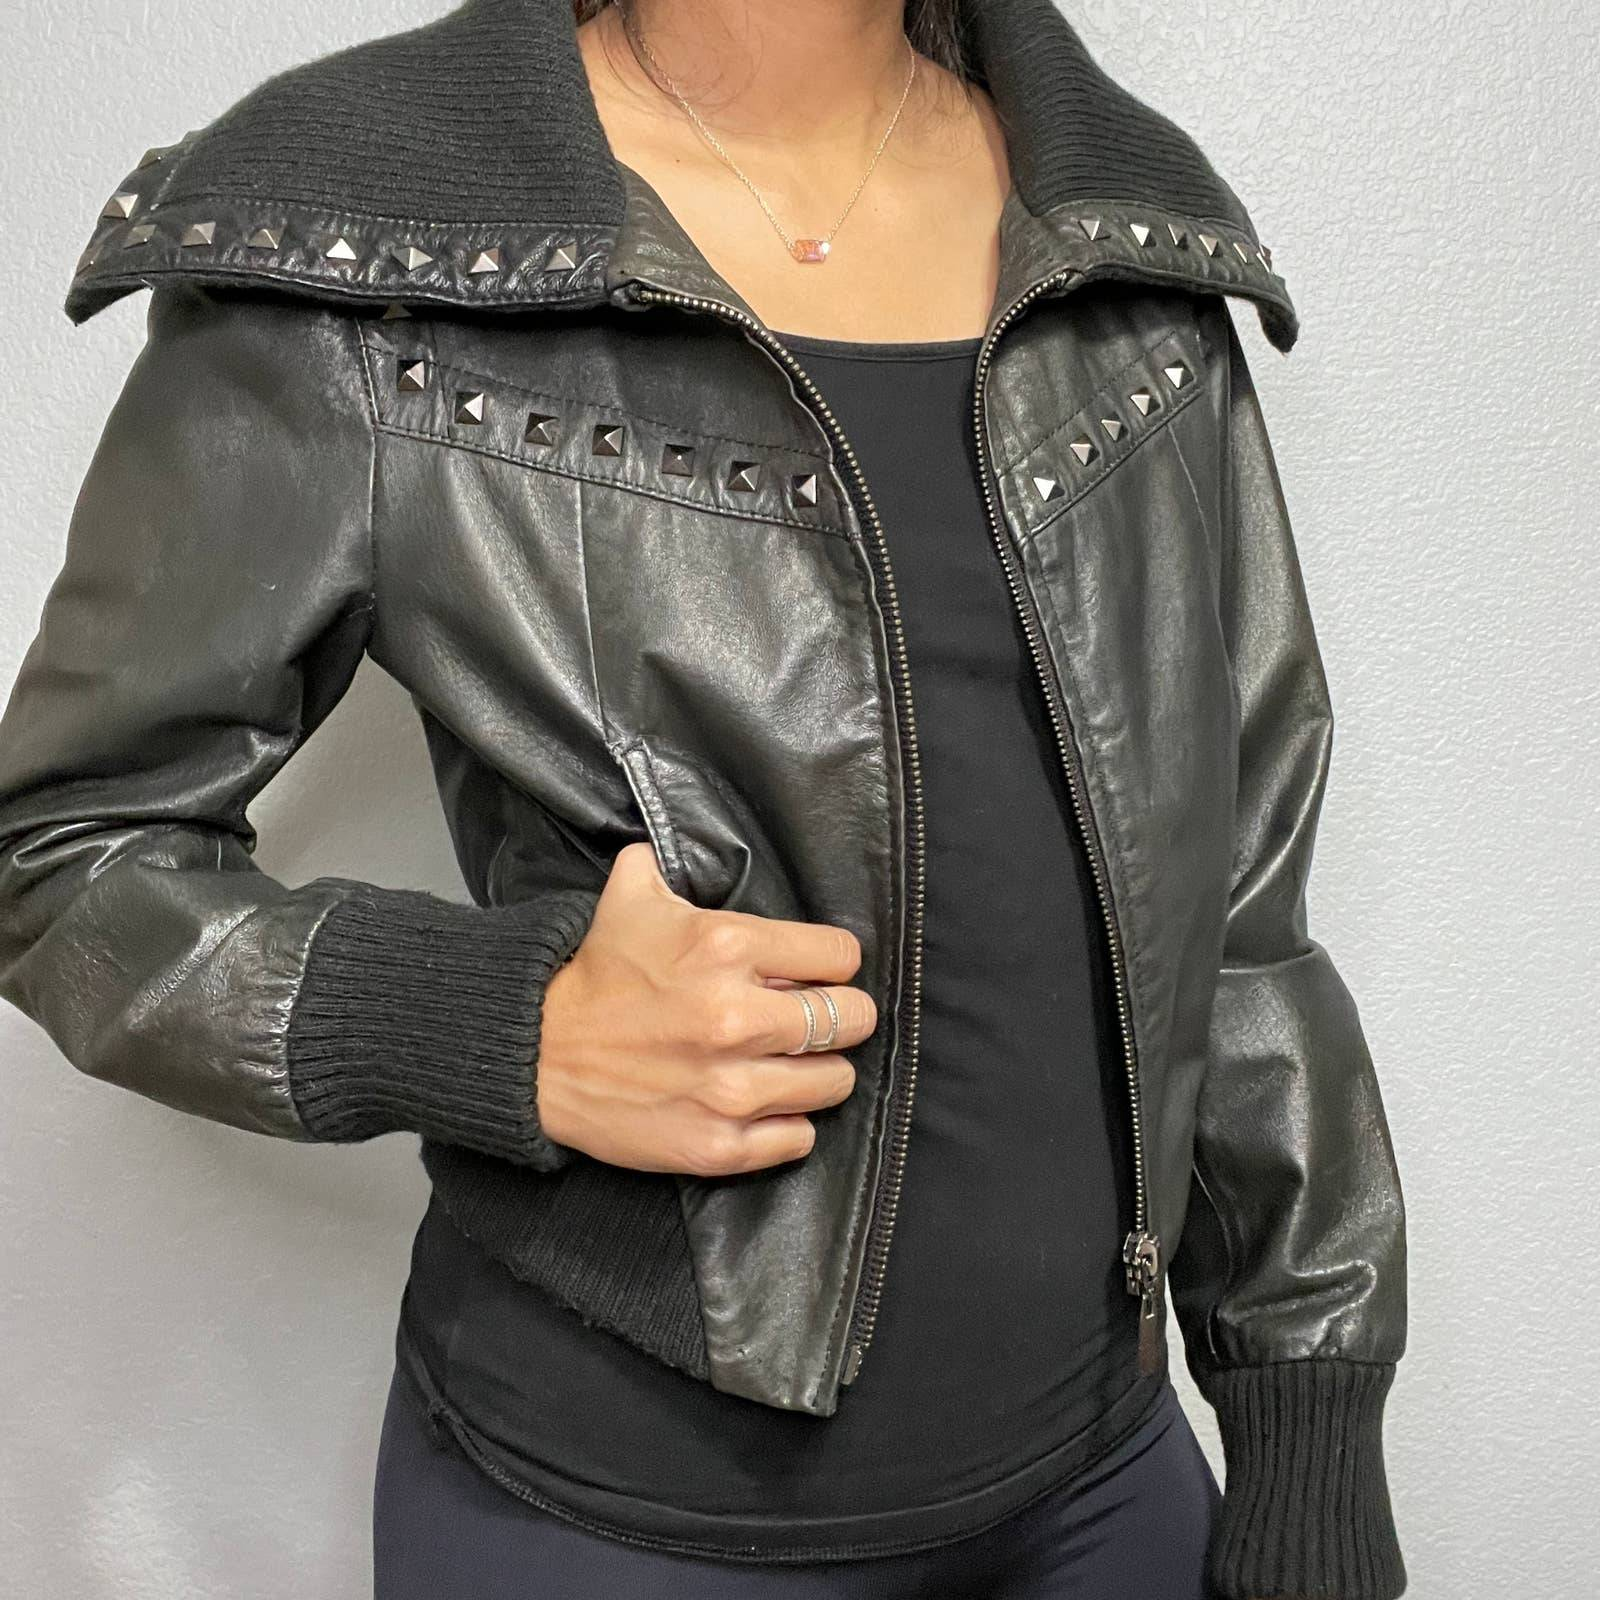 Cropped Leather and Suede Moto Jacket Size XS Bebe Vintage 90s